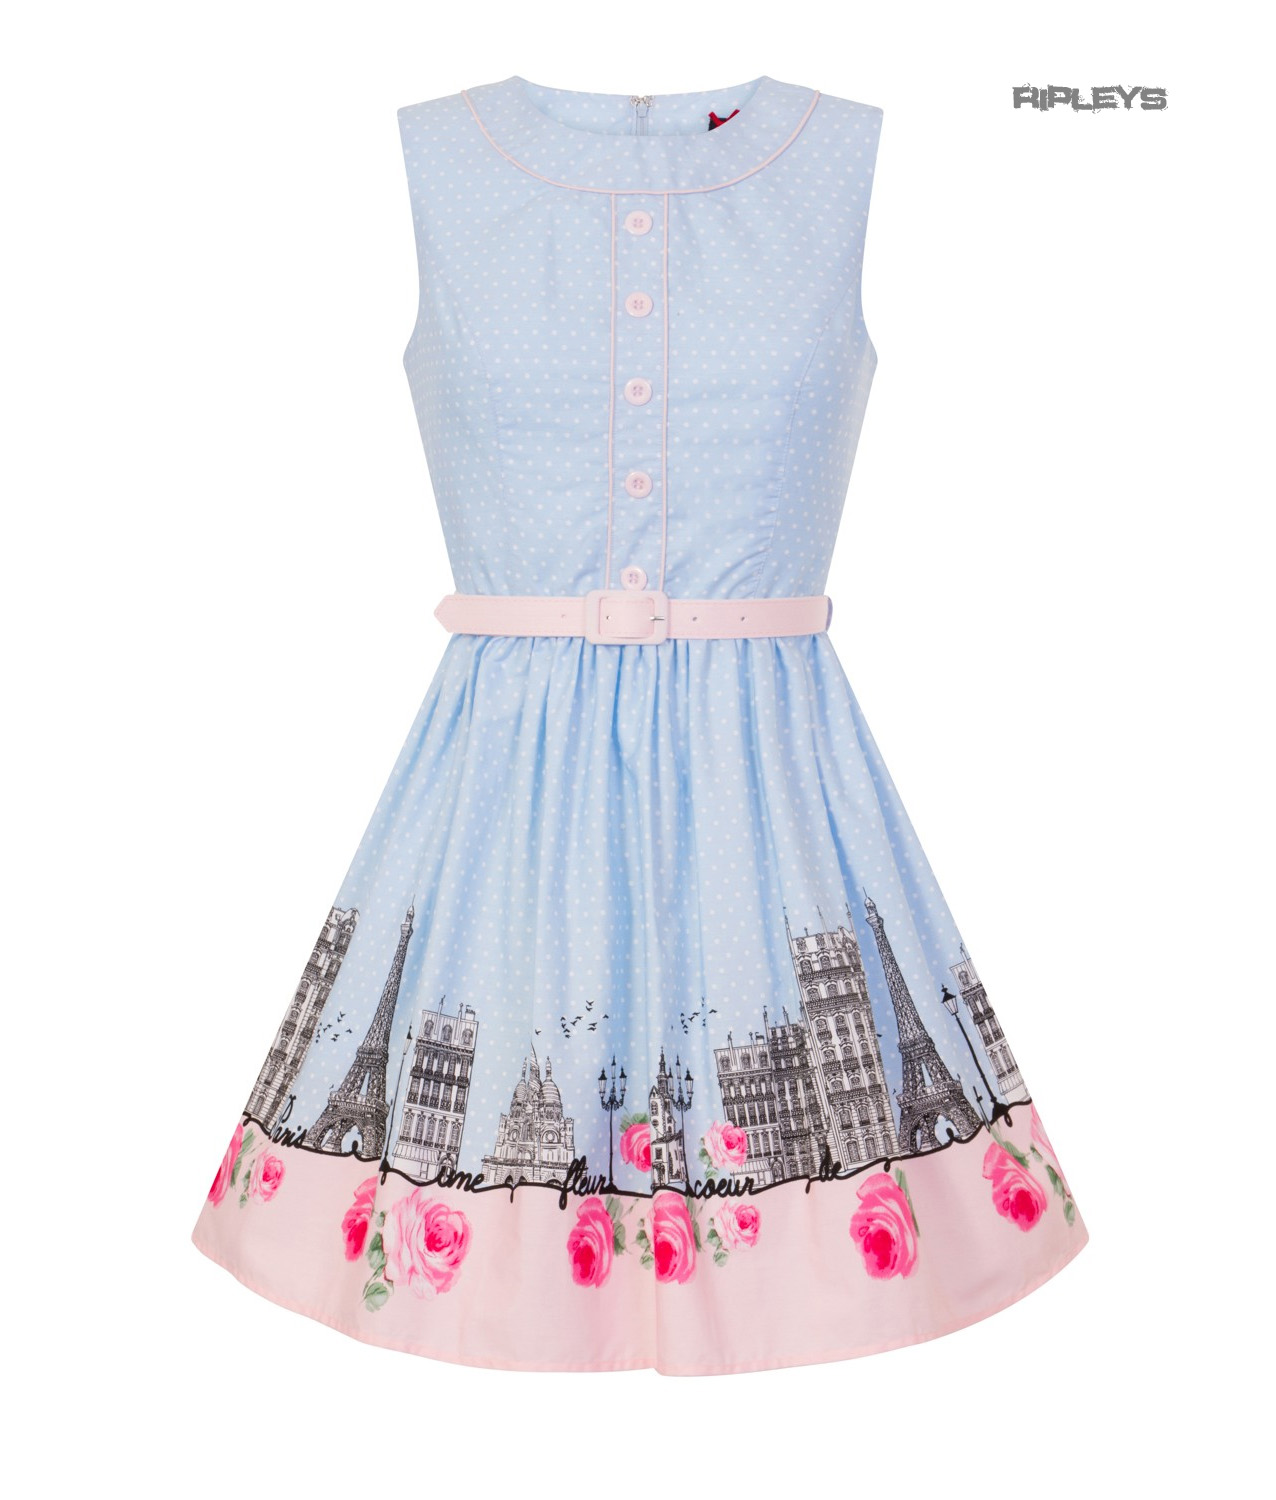 Hell-Bunny-50s-Vintage-Blue-Polka-Dot-PANAME-Mini-Dress-Paris-All-Sizes thumbnail 4